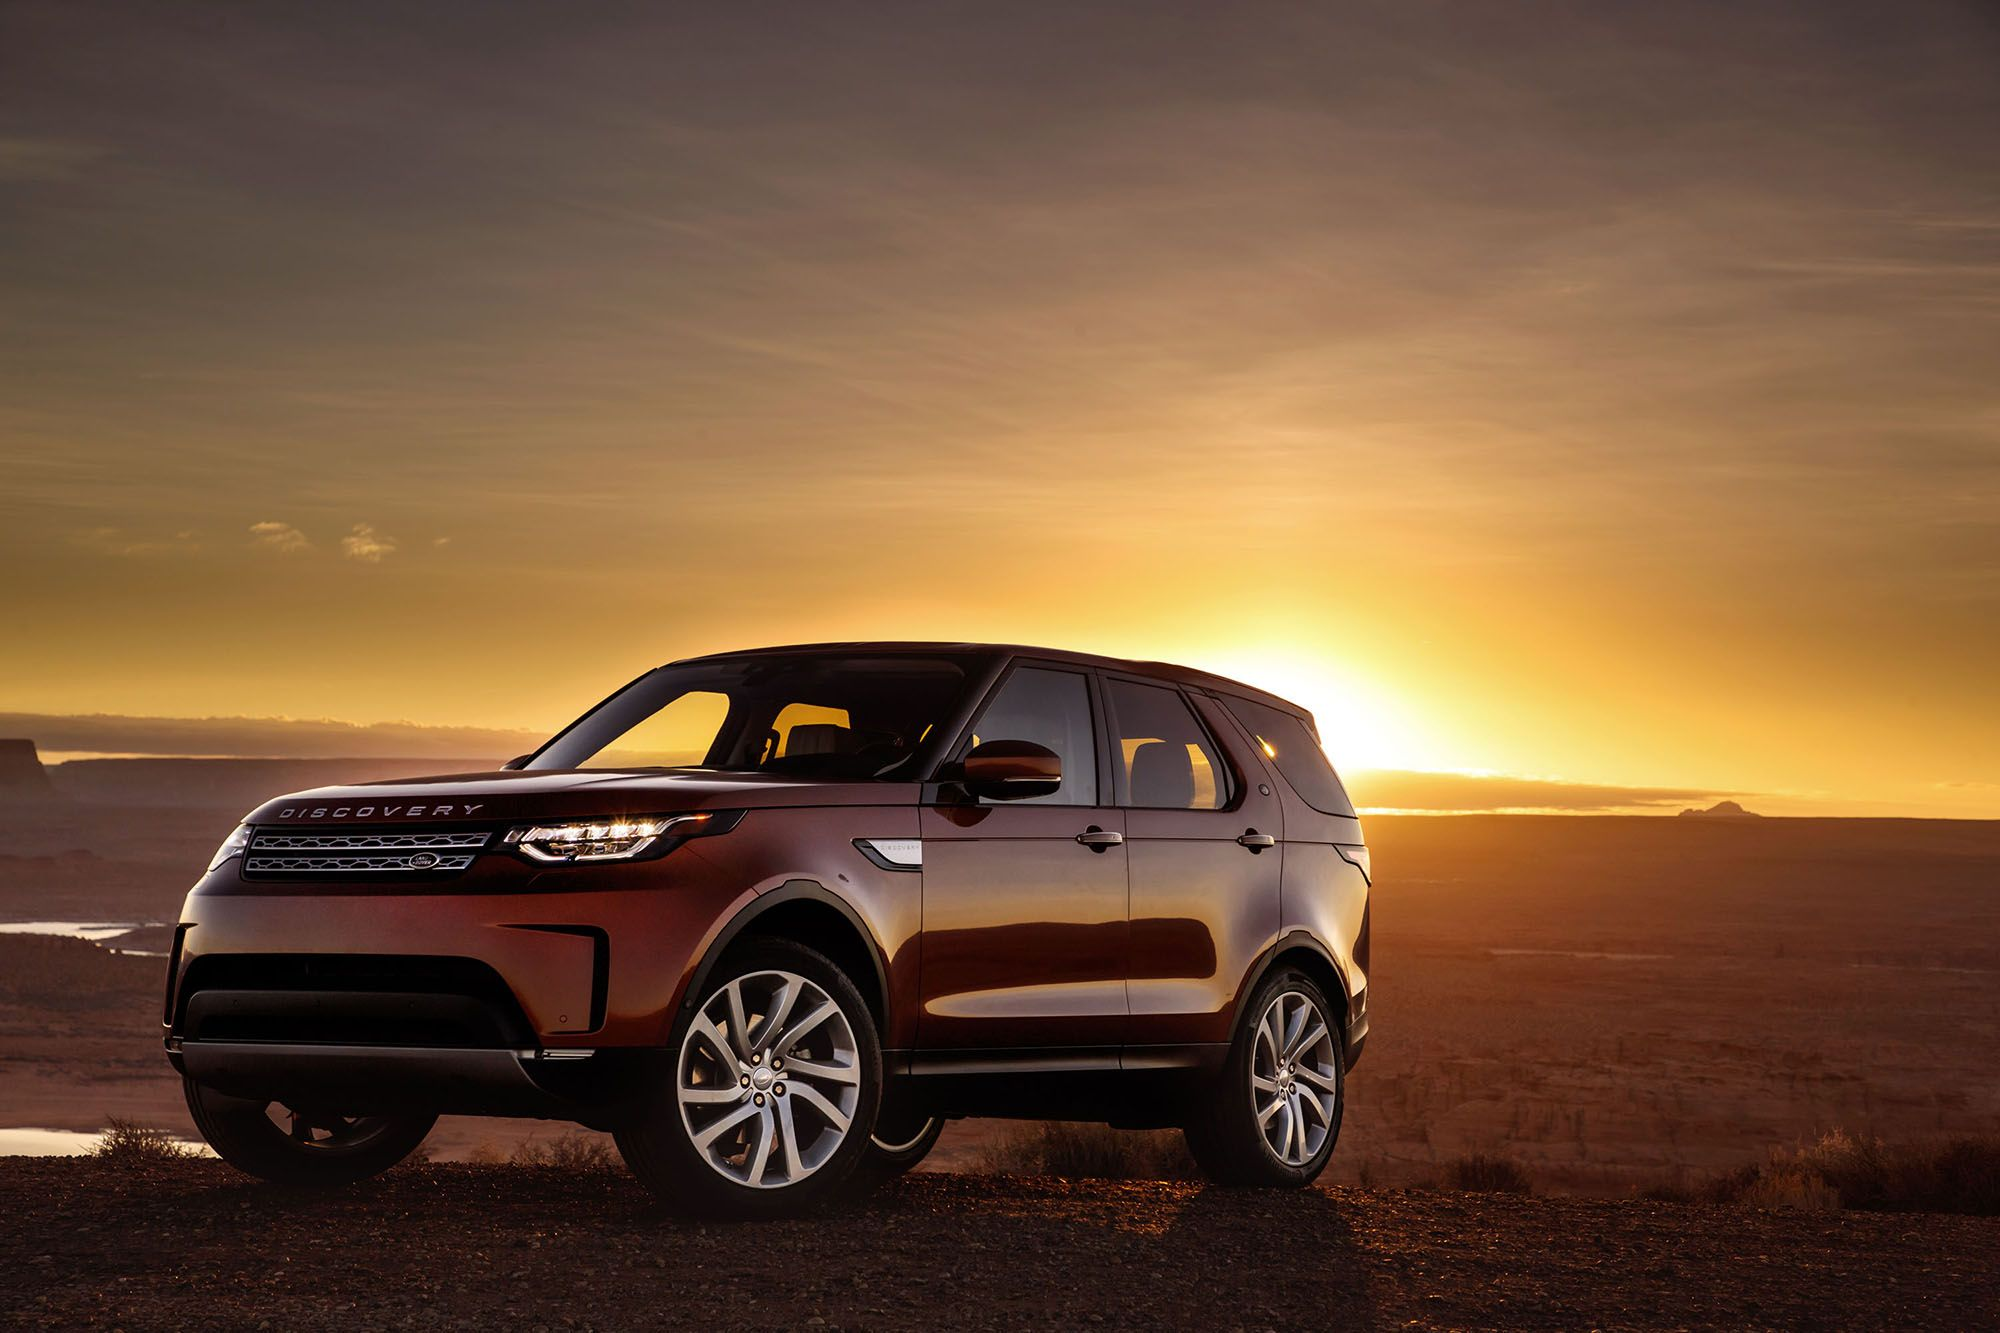 LAND ROVER DISCOVERY PRODUCTION MOVING! Production of the